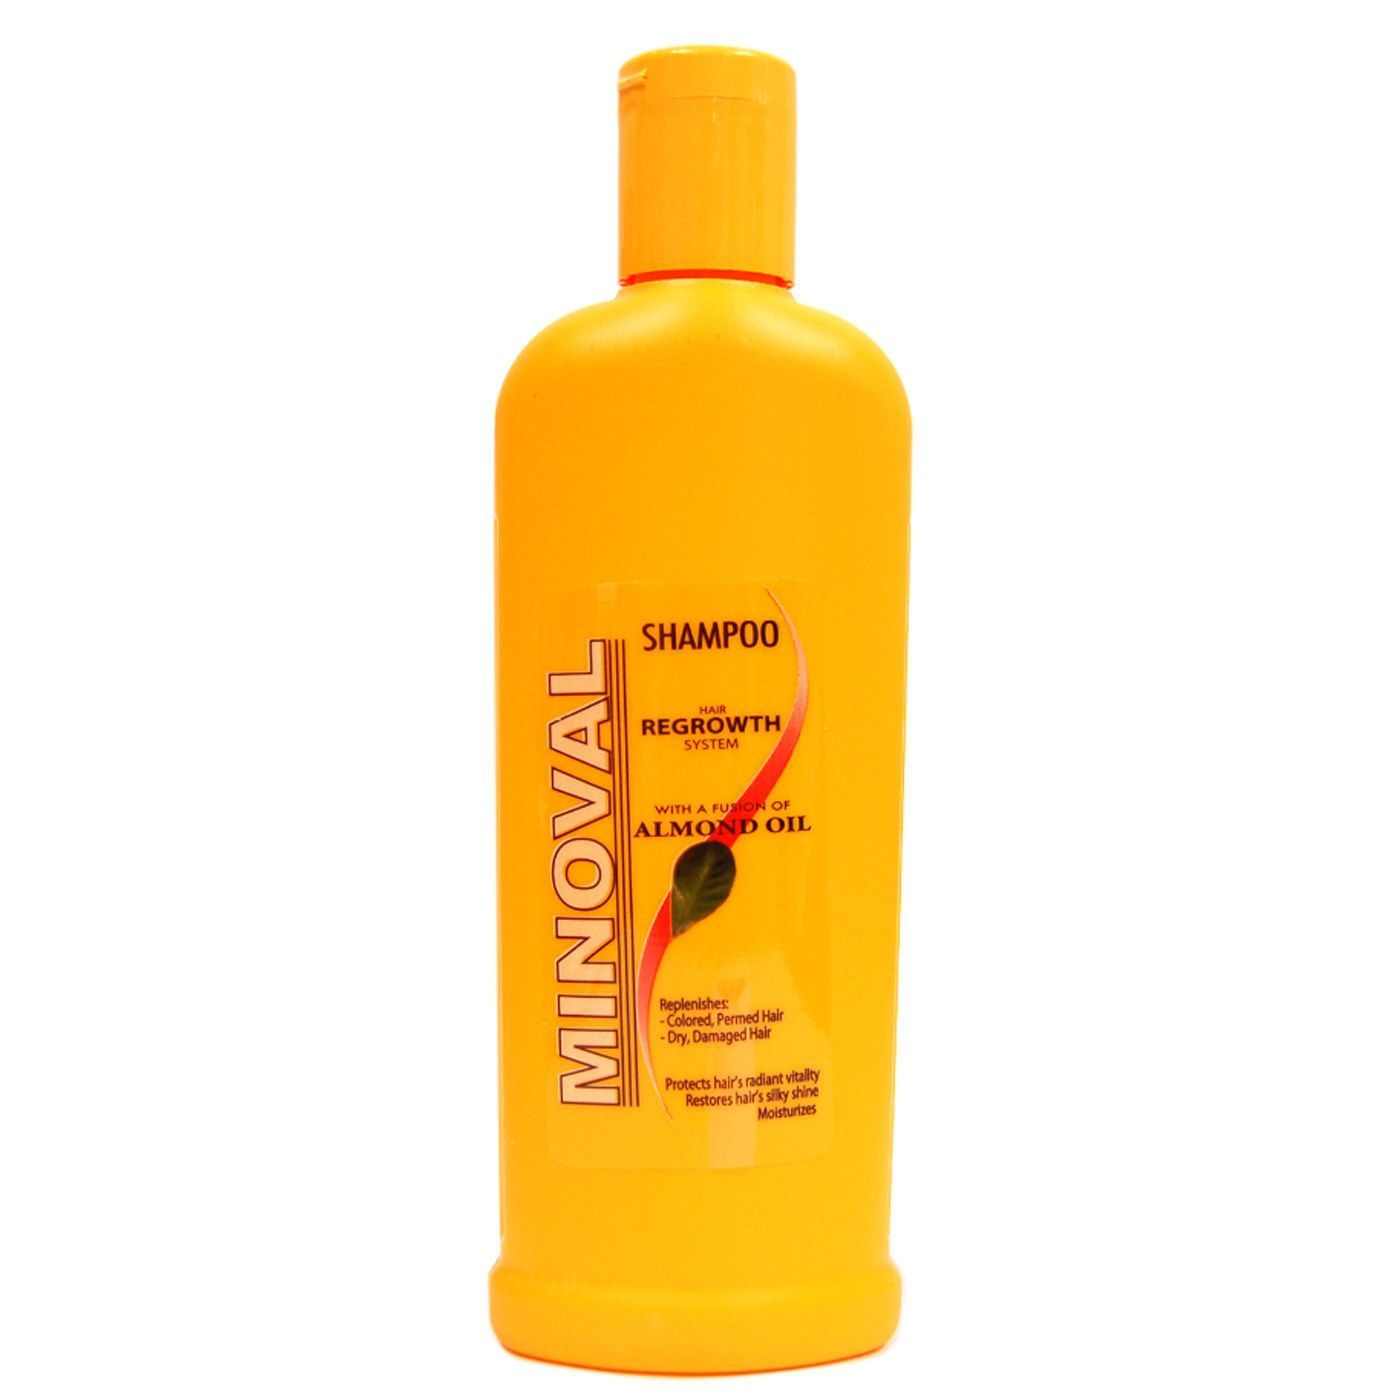 Minoval Hair Regrowth System Shampoo With Almond Oil 8oz